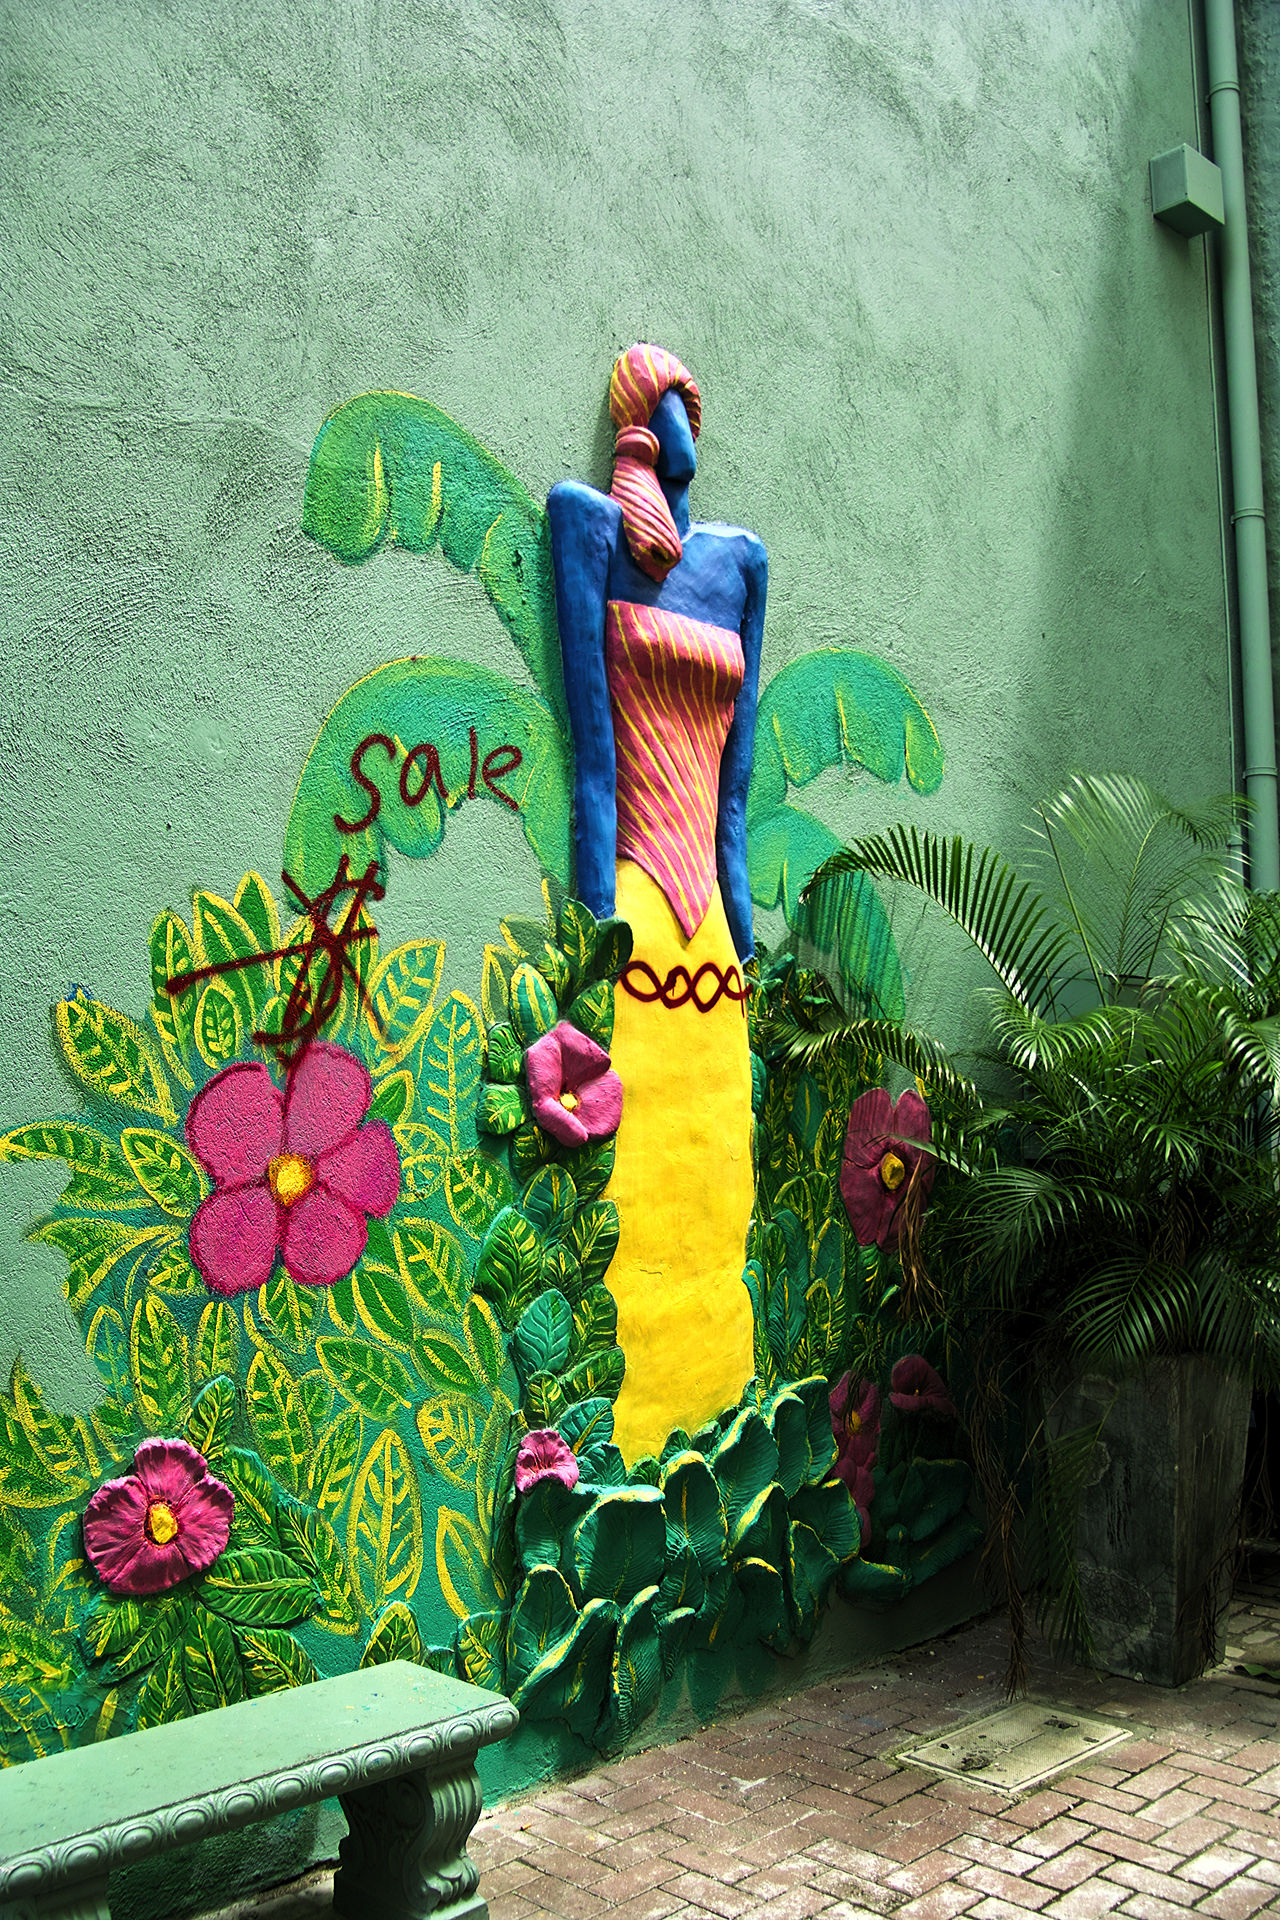 Wall art by Curaçaoan artist Nena Sanchez, victimized by graffiti Art And Craft Close-up Curacao (willemstad) Day Flower Green Color Low Section Multi Colored Nena Sanchez No People Outdoors Piece Of Art Plant Scultpure Wall Art Colorful Working